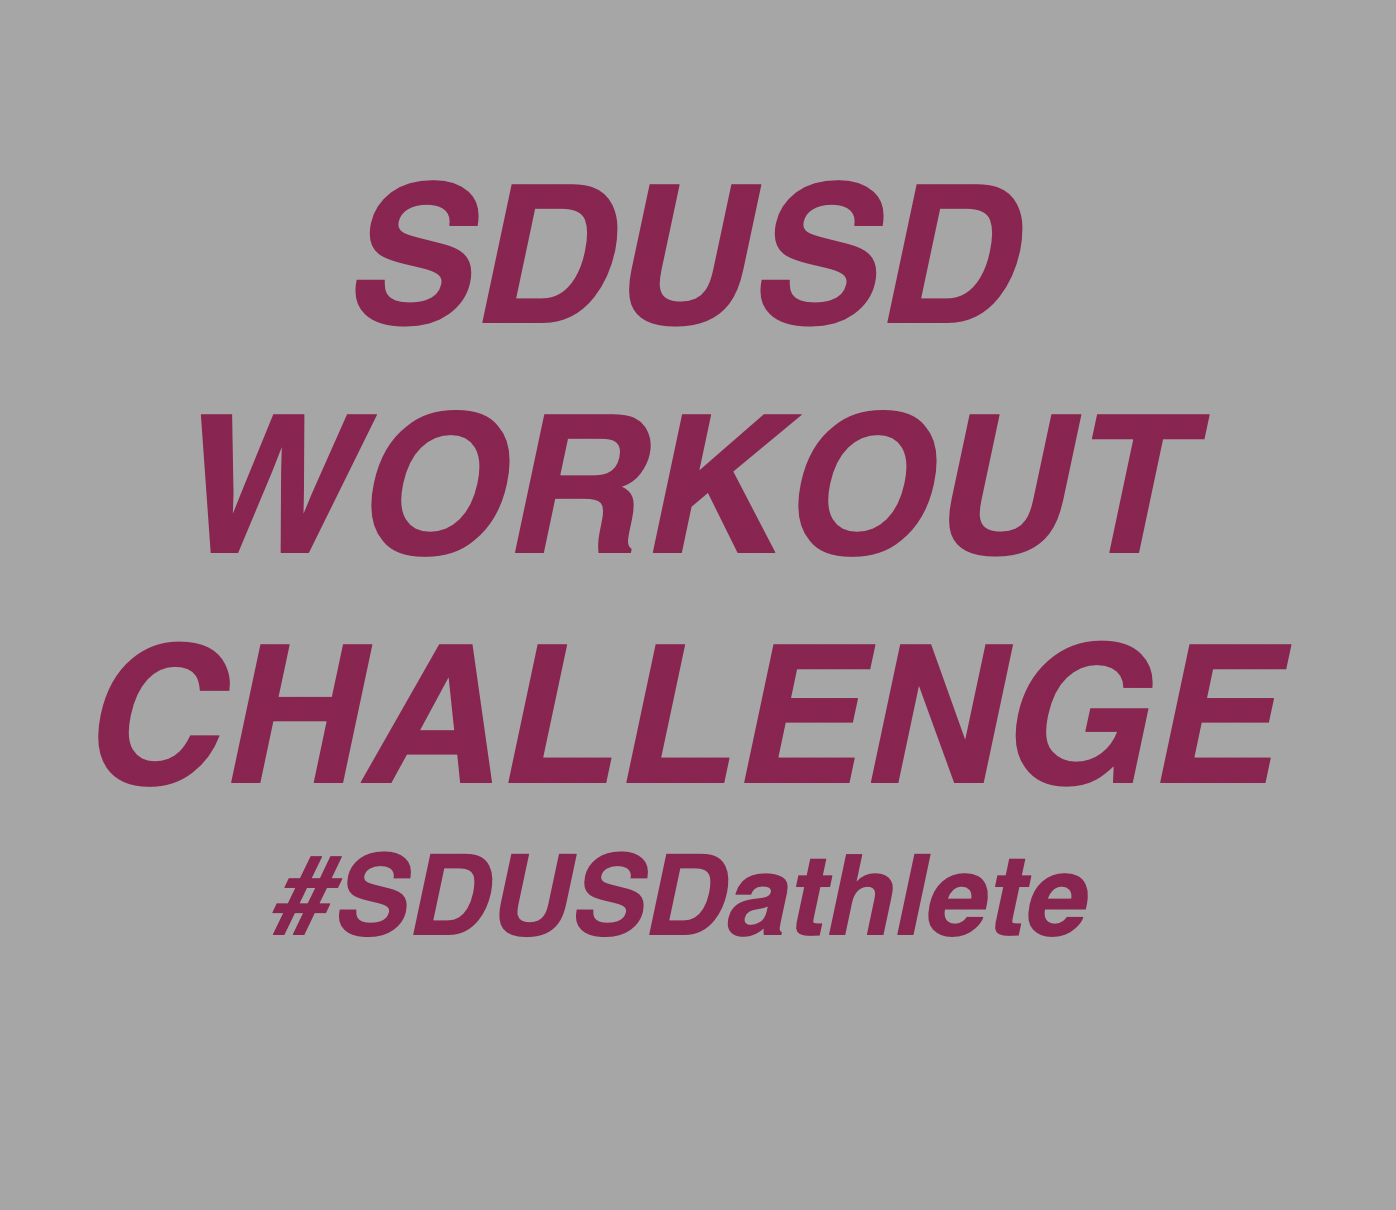 SDUSD – Workout Challenge